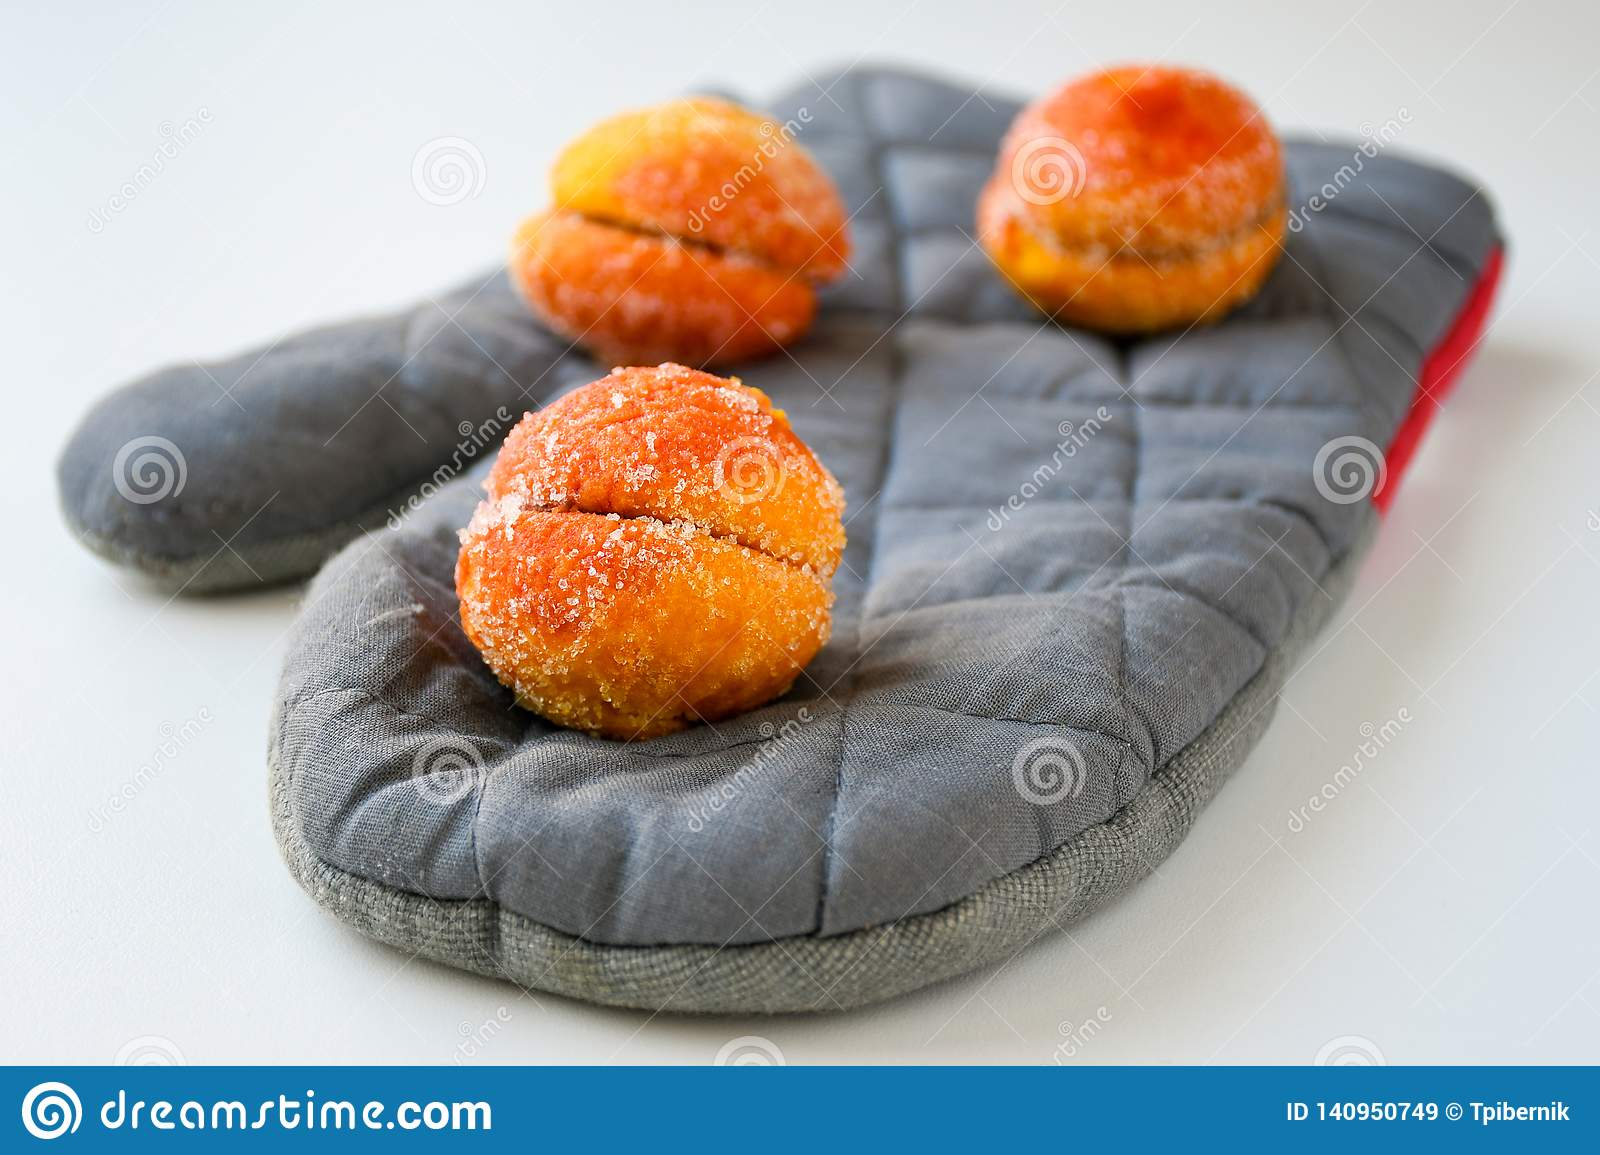 Freshly made sweet apricots with sugar coating